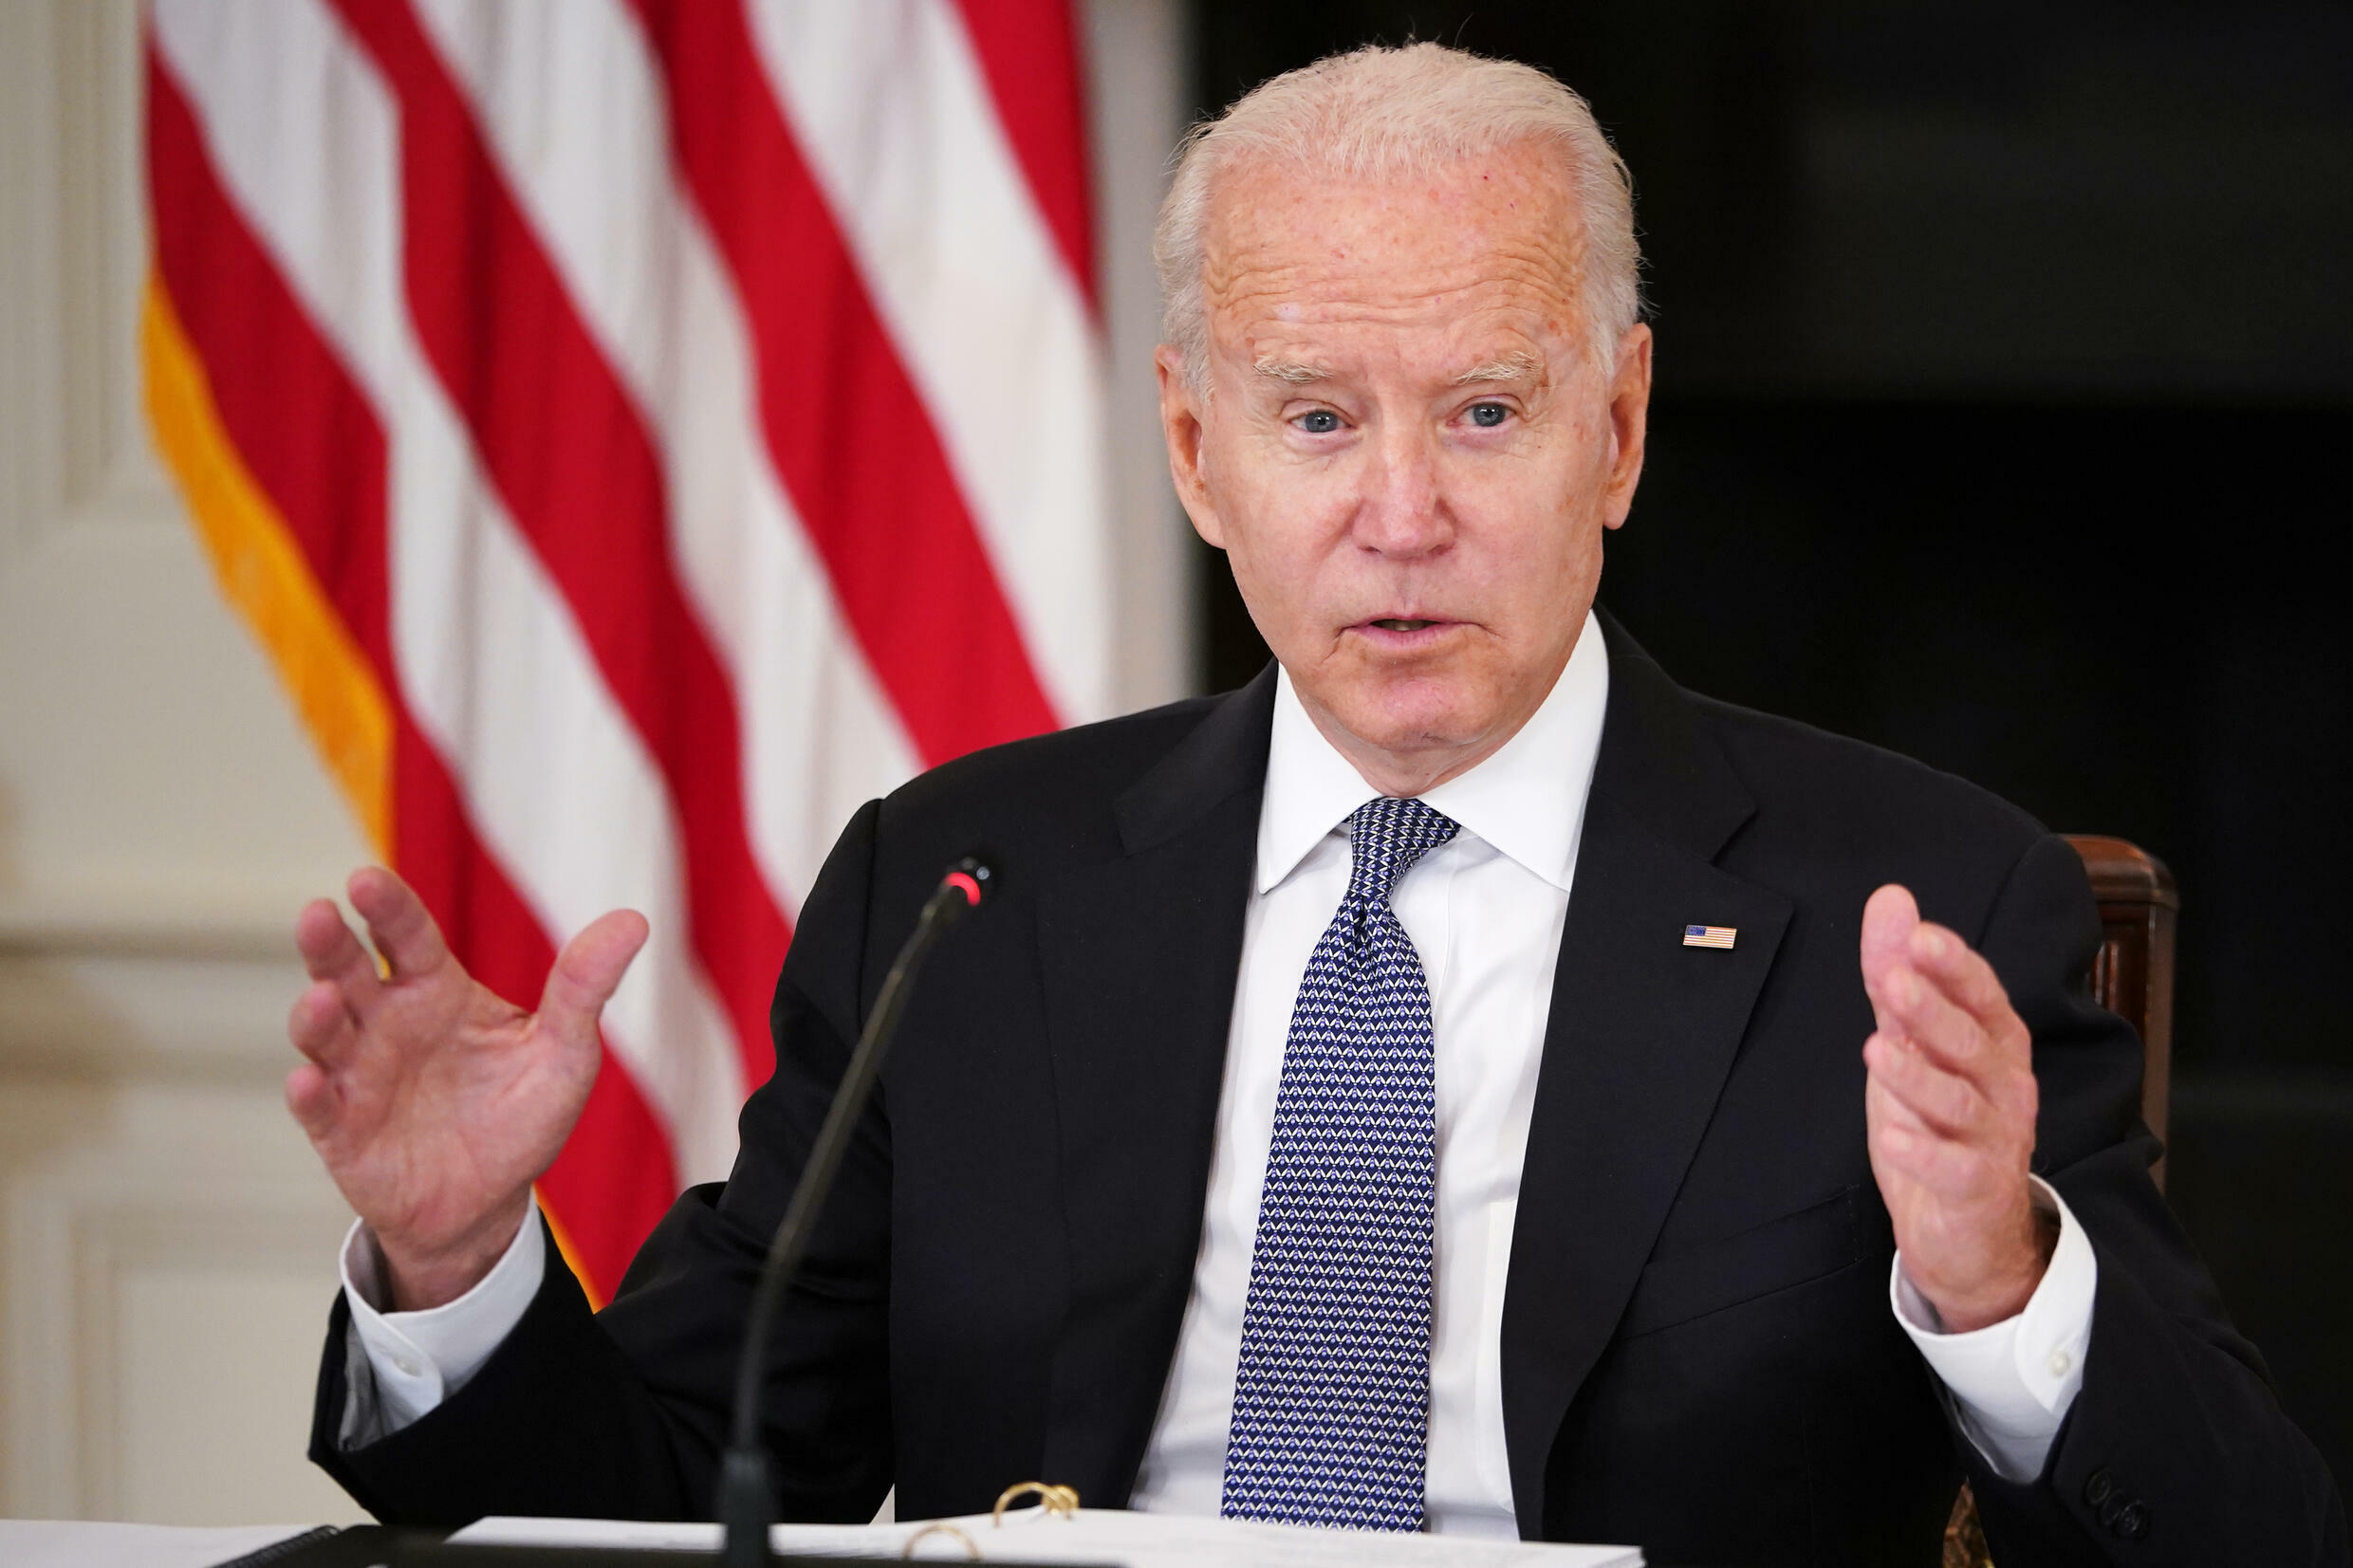 President Biden urges NY Governor to resign after independent probe finds he sexually harassed 11 women.